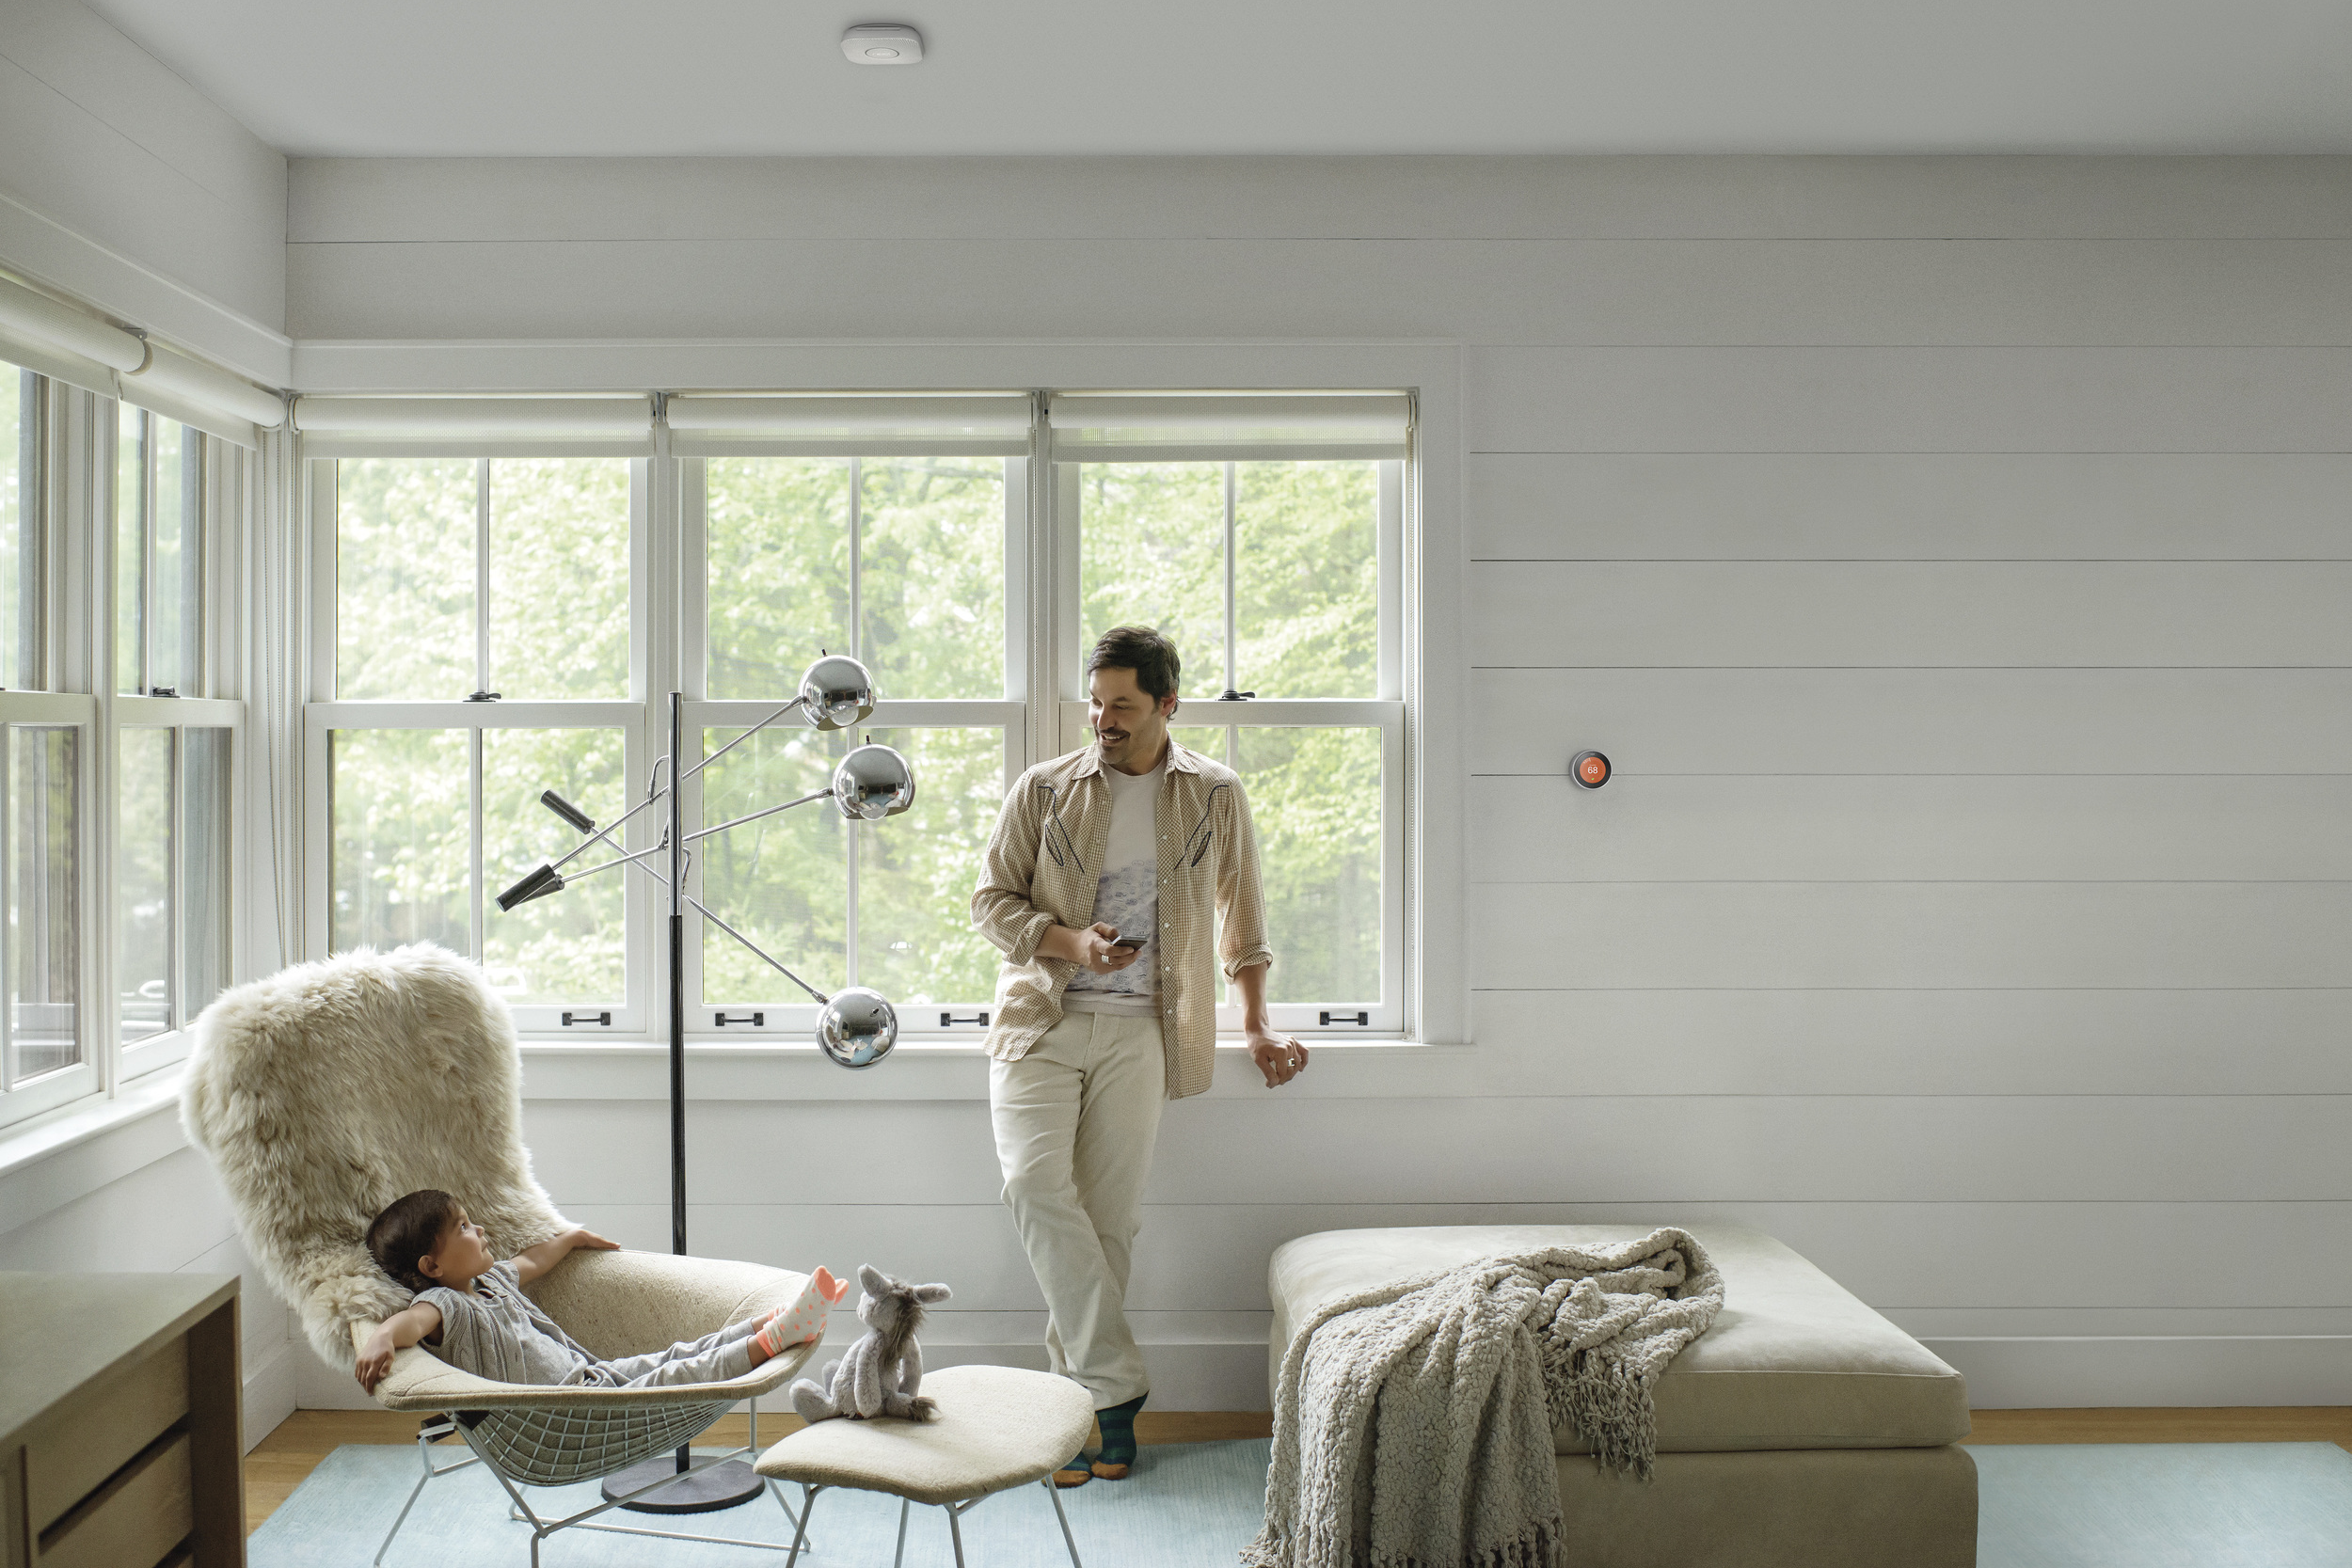 Nest Lifestyle inspiration with Thermostat and Smoke Detector - Photograph courtesy of NEST